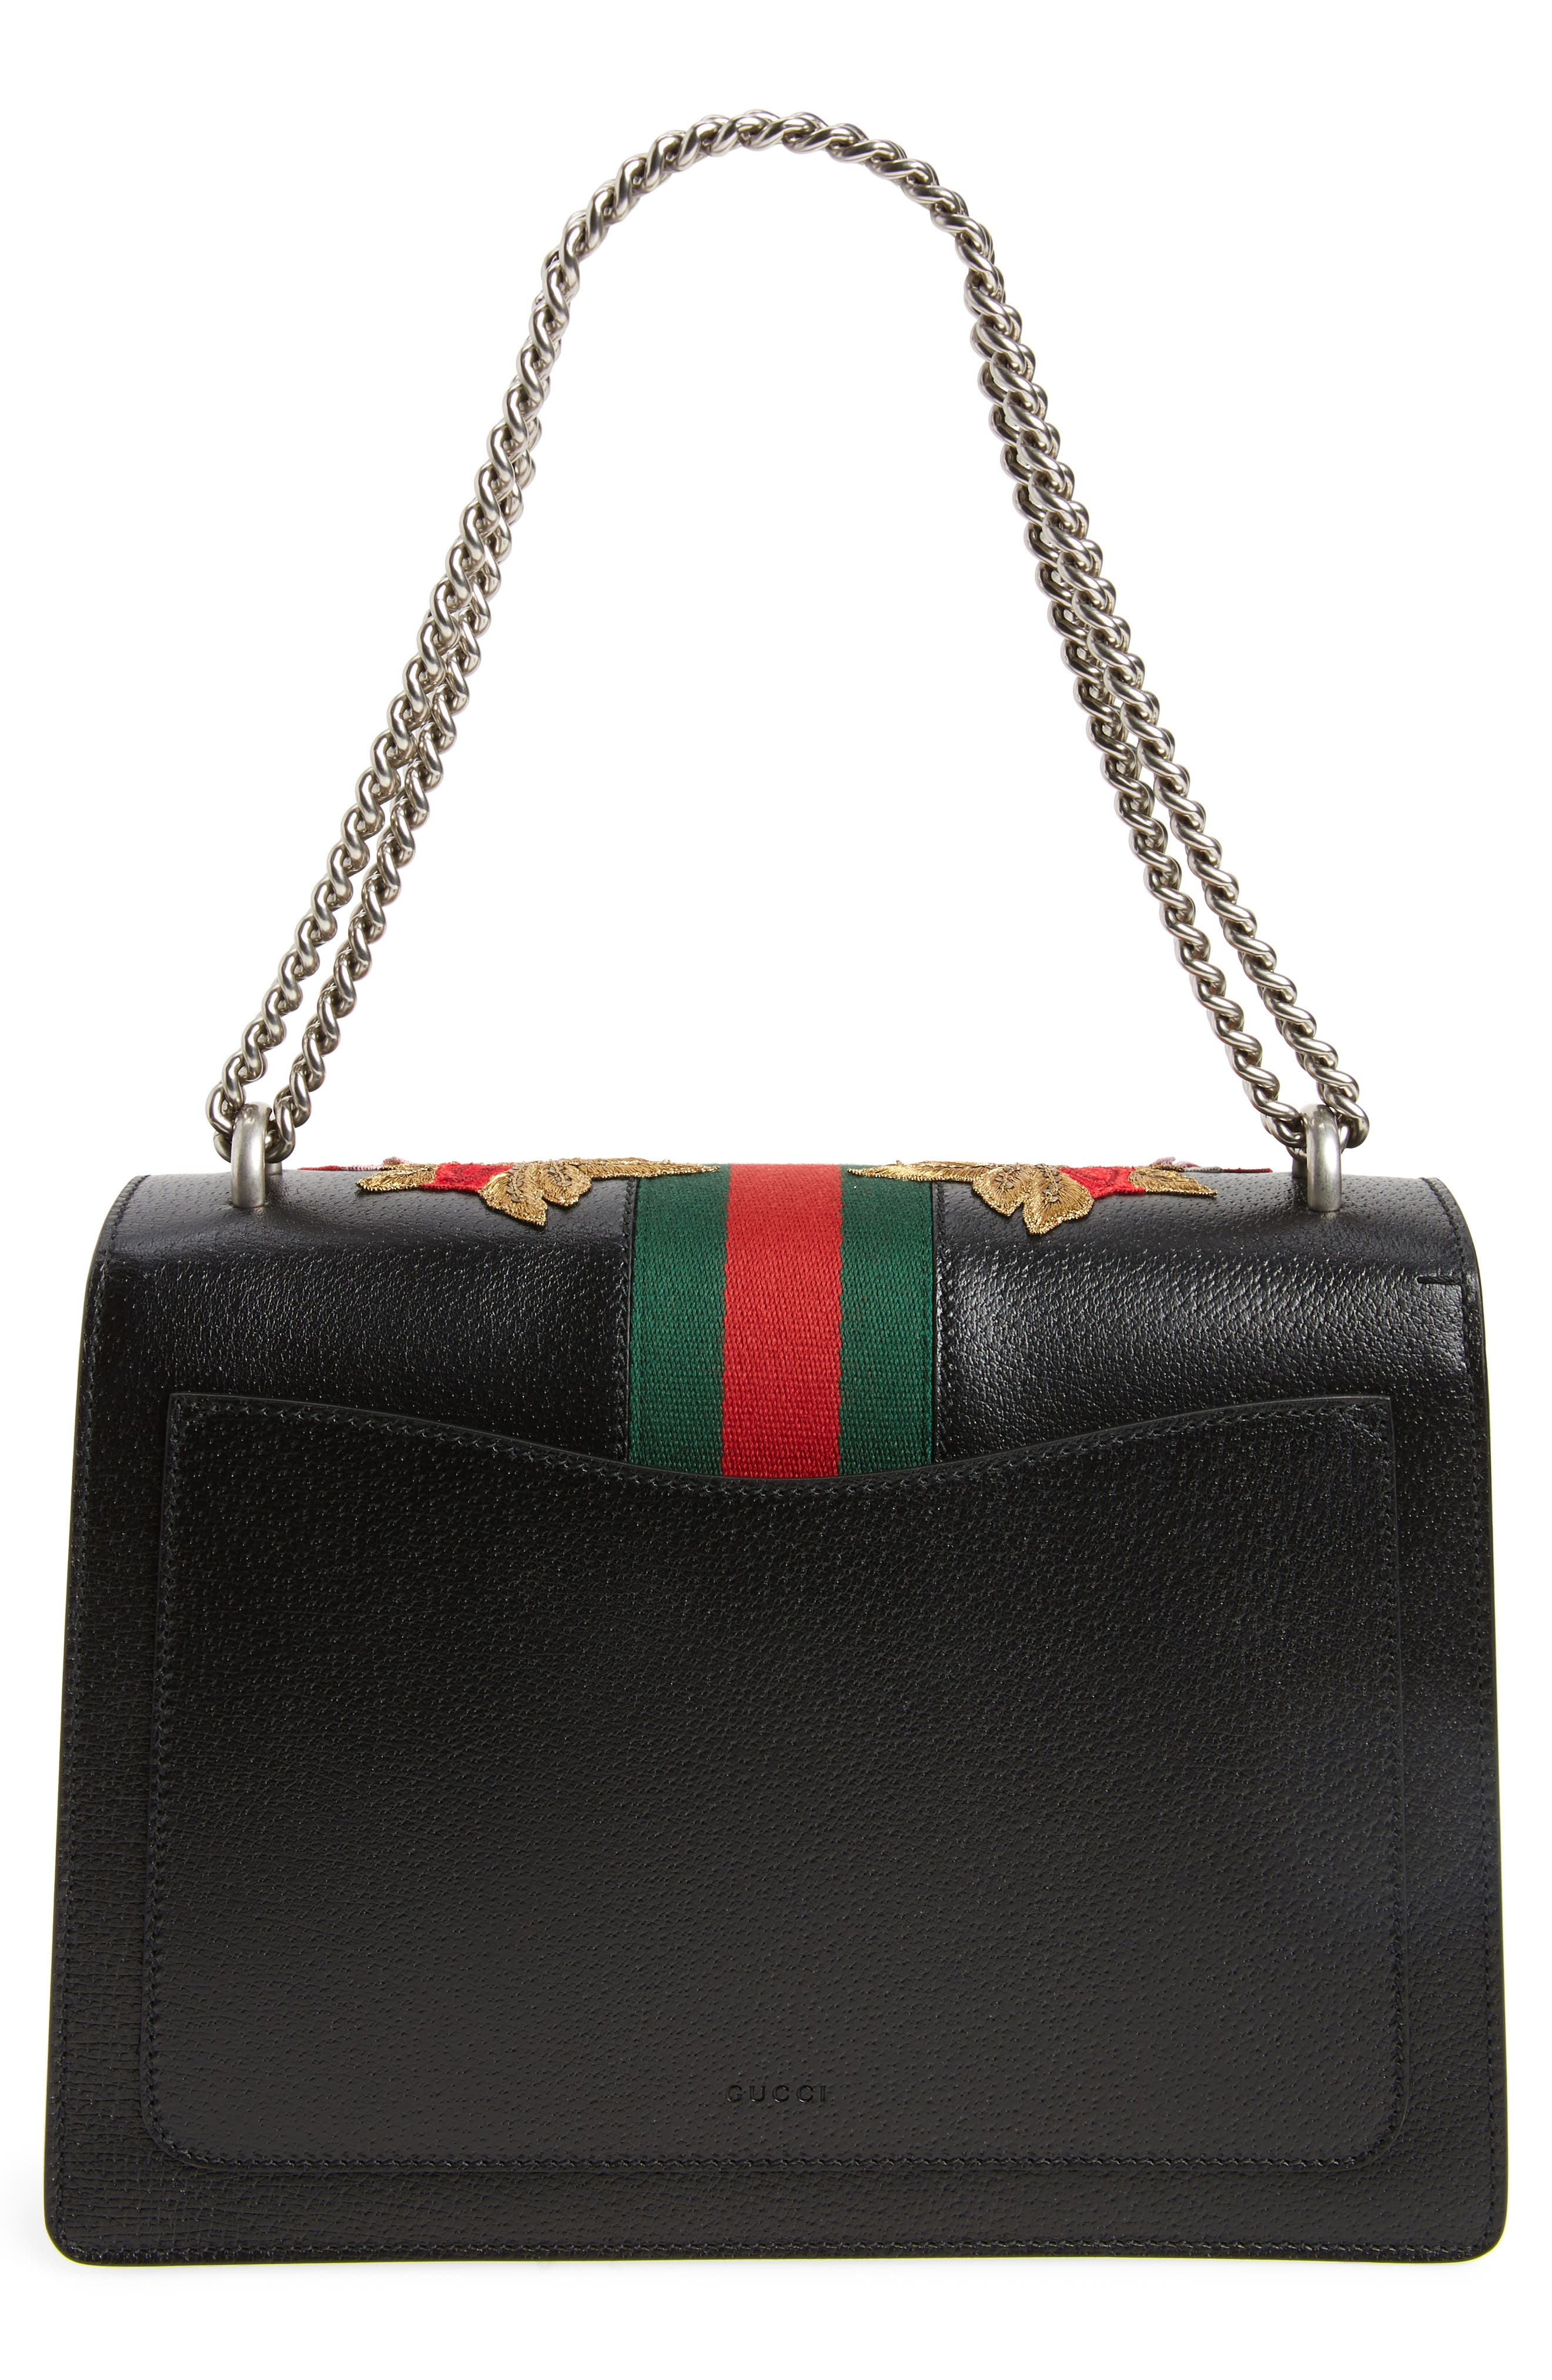 Medium Dionysus Embroidered Roses Leather Shoulder Bag,                             Alternate thumbnail 3, color,                             NERO/MULTI